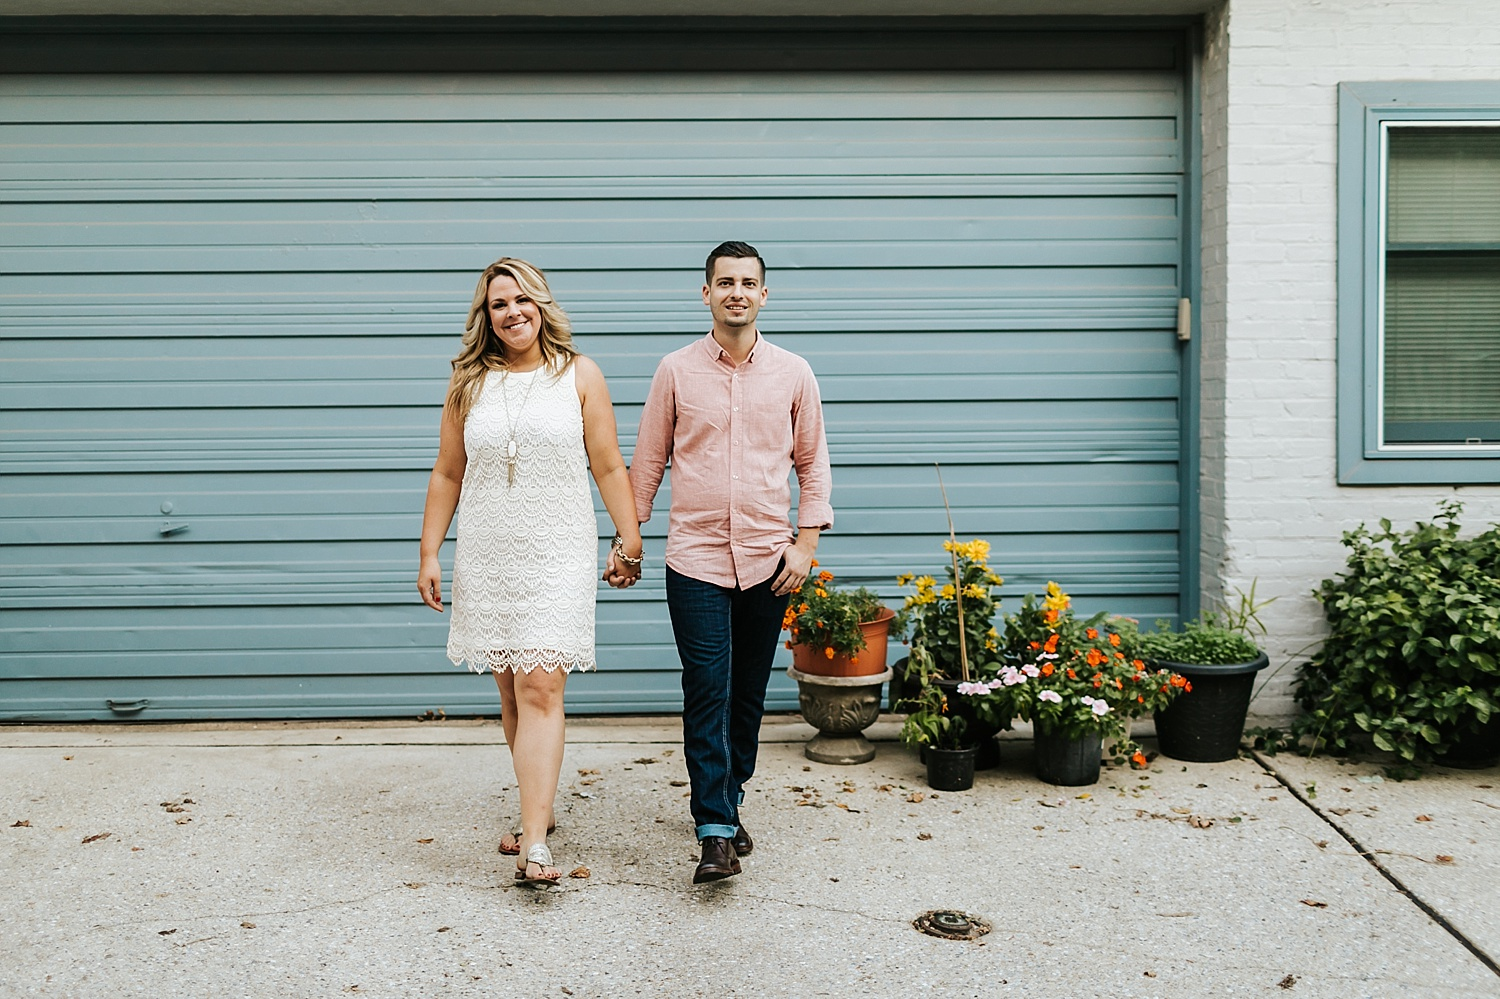 Fall engagement session at fells point, baltimore